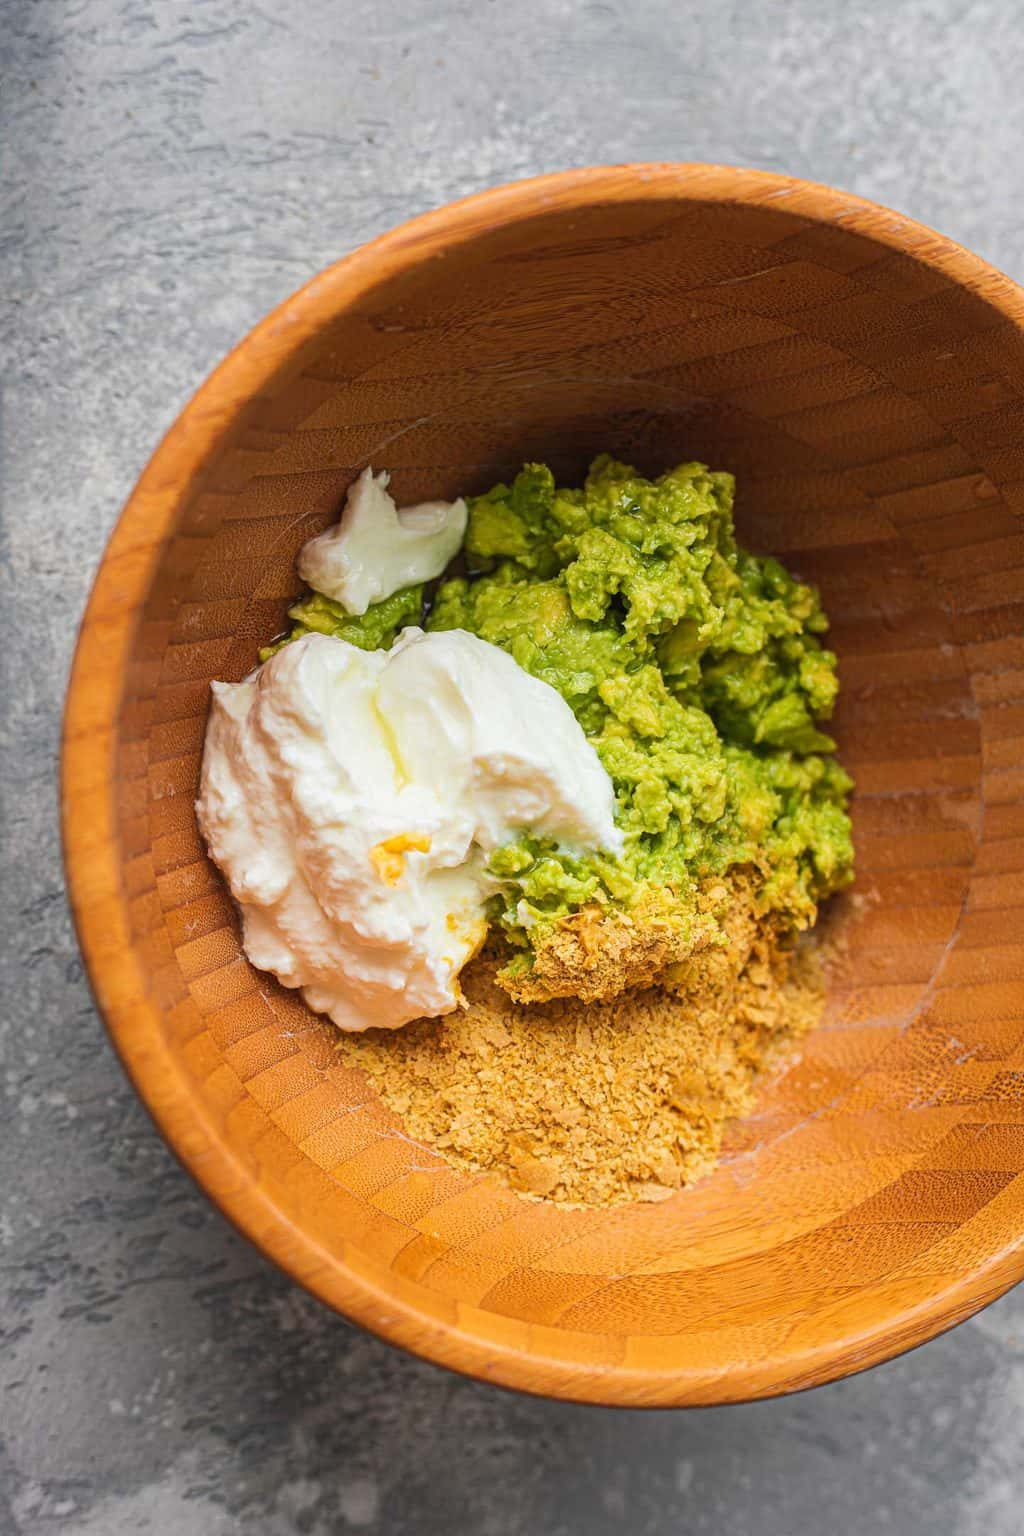 Avocado and soy yoghurt in a mixing bowl